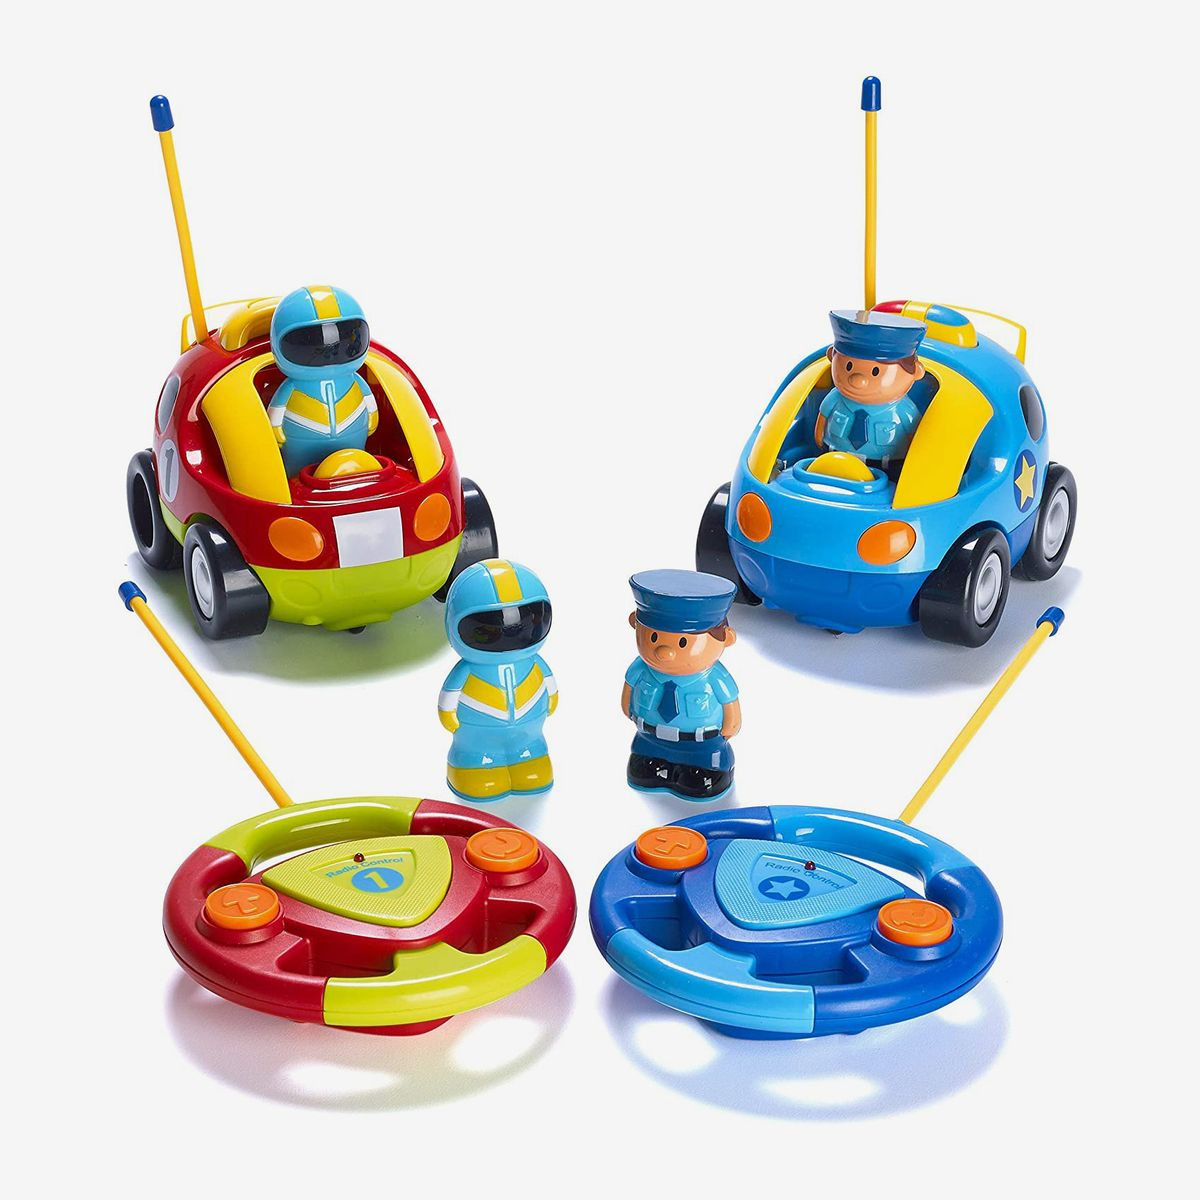 Best Toys For 3 Year Olds Christmas 2021 26 Best Toys For 3 Year Olds 2020 The Strategist New York Magazine